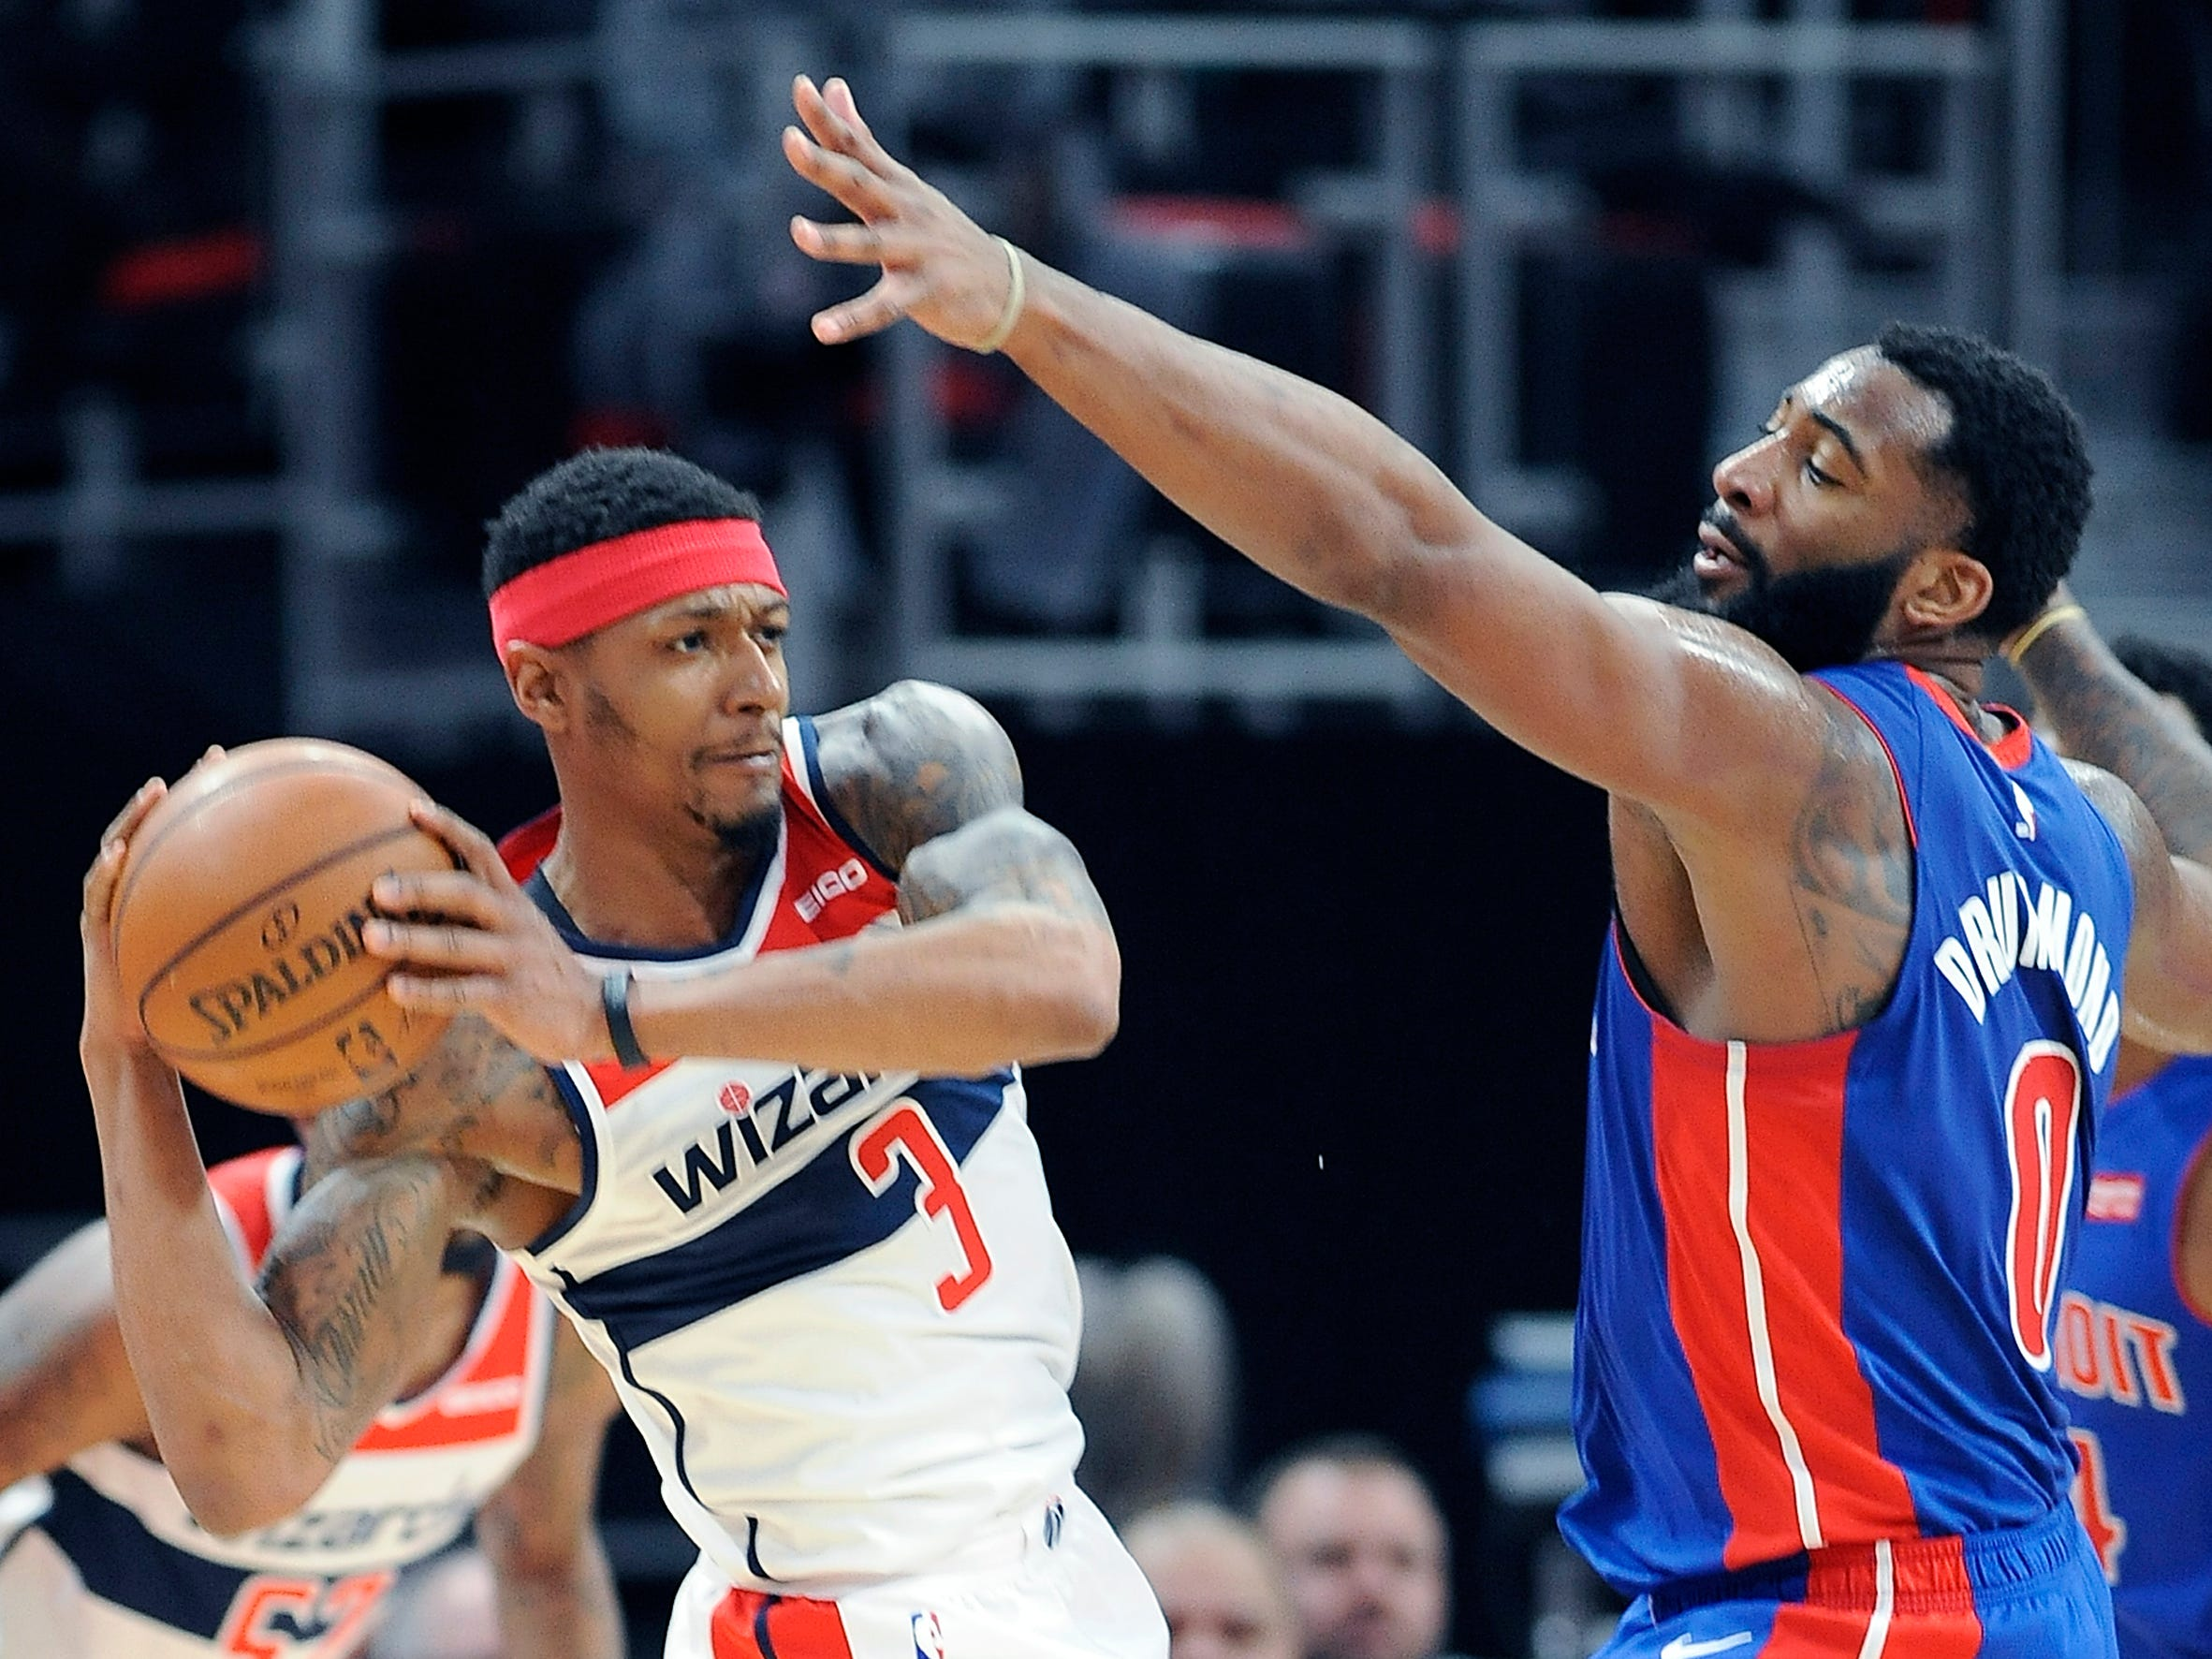 Pistons' Andre Drummond defends Wizards' Bradley Beal in the second quarter. Detroit Pistons win, 121-112, over the Washington Wizards, Little Caesars Arena., Feb. 11, 2019, Detroit, Mi.